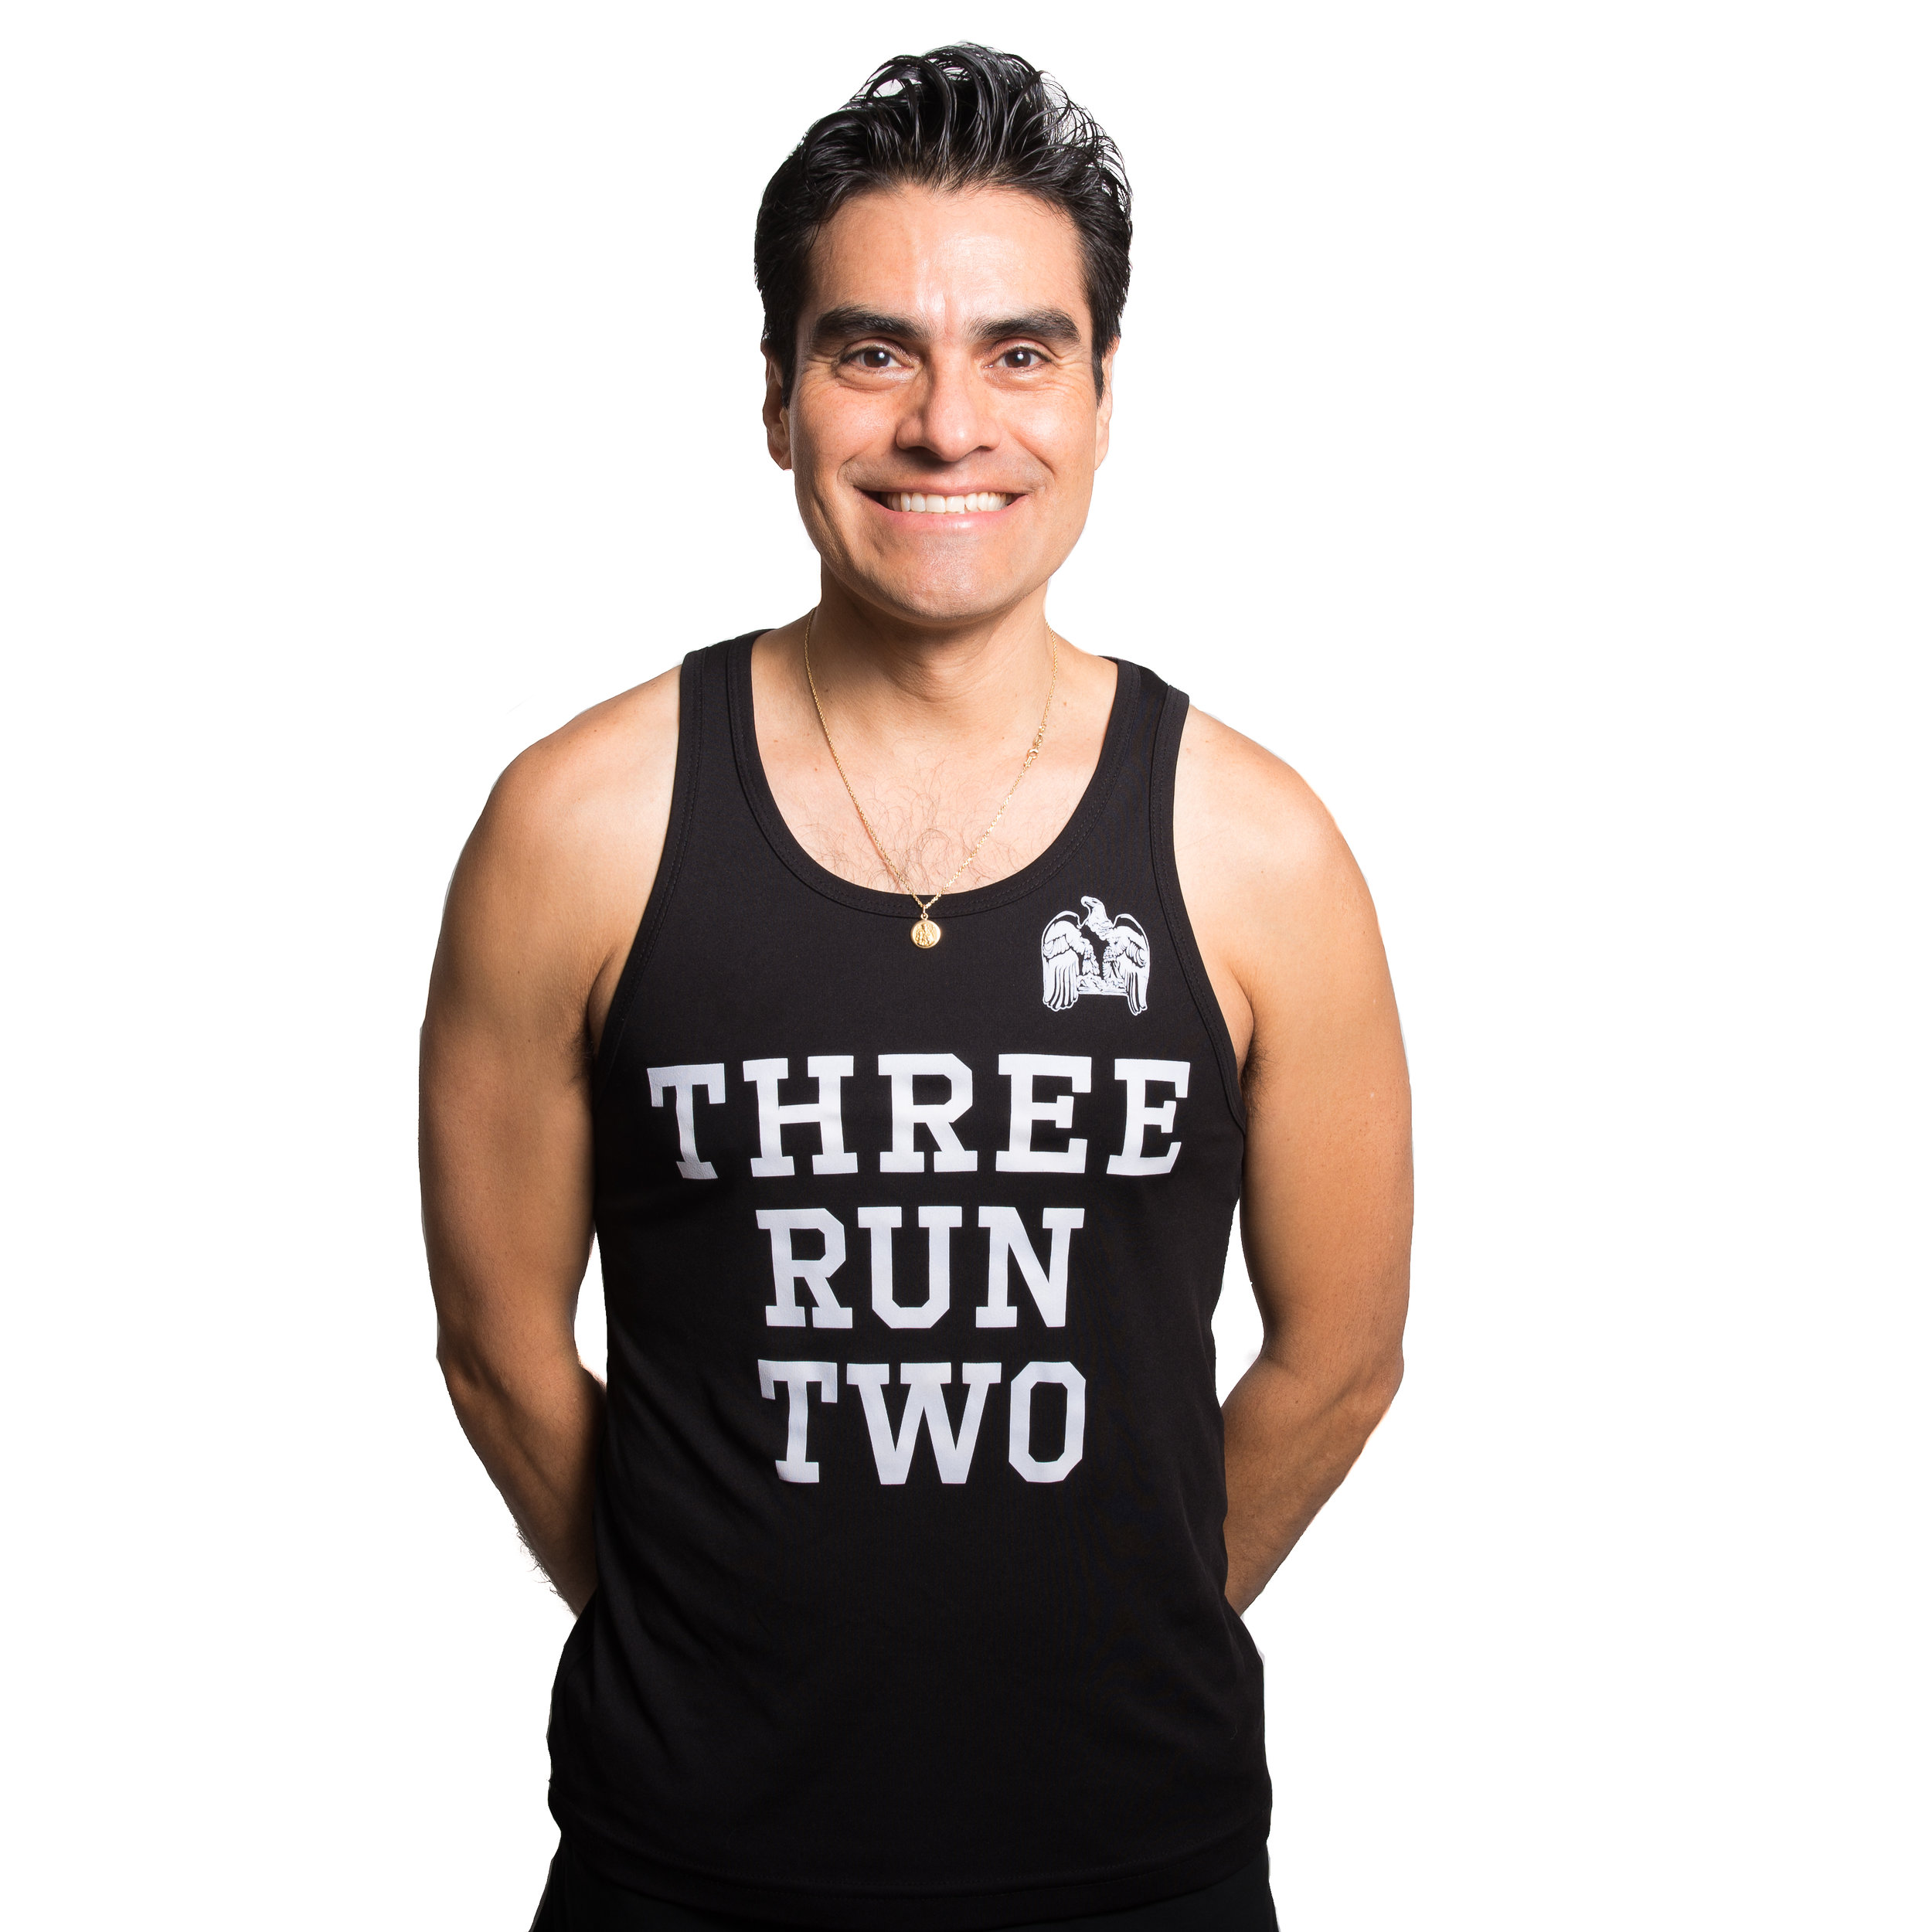 ArturoGamez - Marathon Qualifier, PR: New York, 2018 - 3:04:47, 2:59:452019 Goal Race & Time: Chicago Marathon or New York City MarathonHow did you get into running? My brother forced me to join cross country in high school.How did you become involved with 3RUN2? My niece brought me along to a run in 2016- I've been showing up ever since.